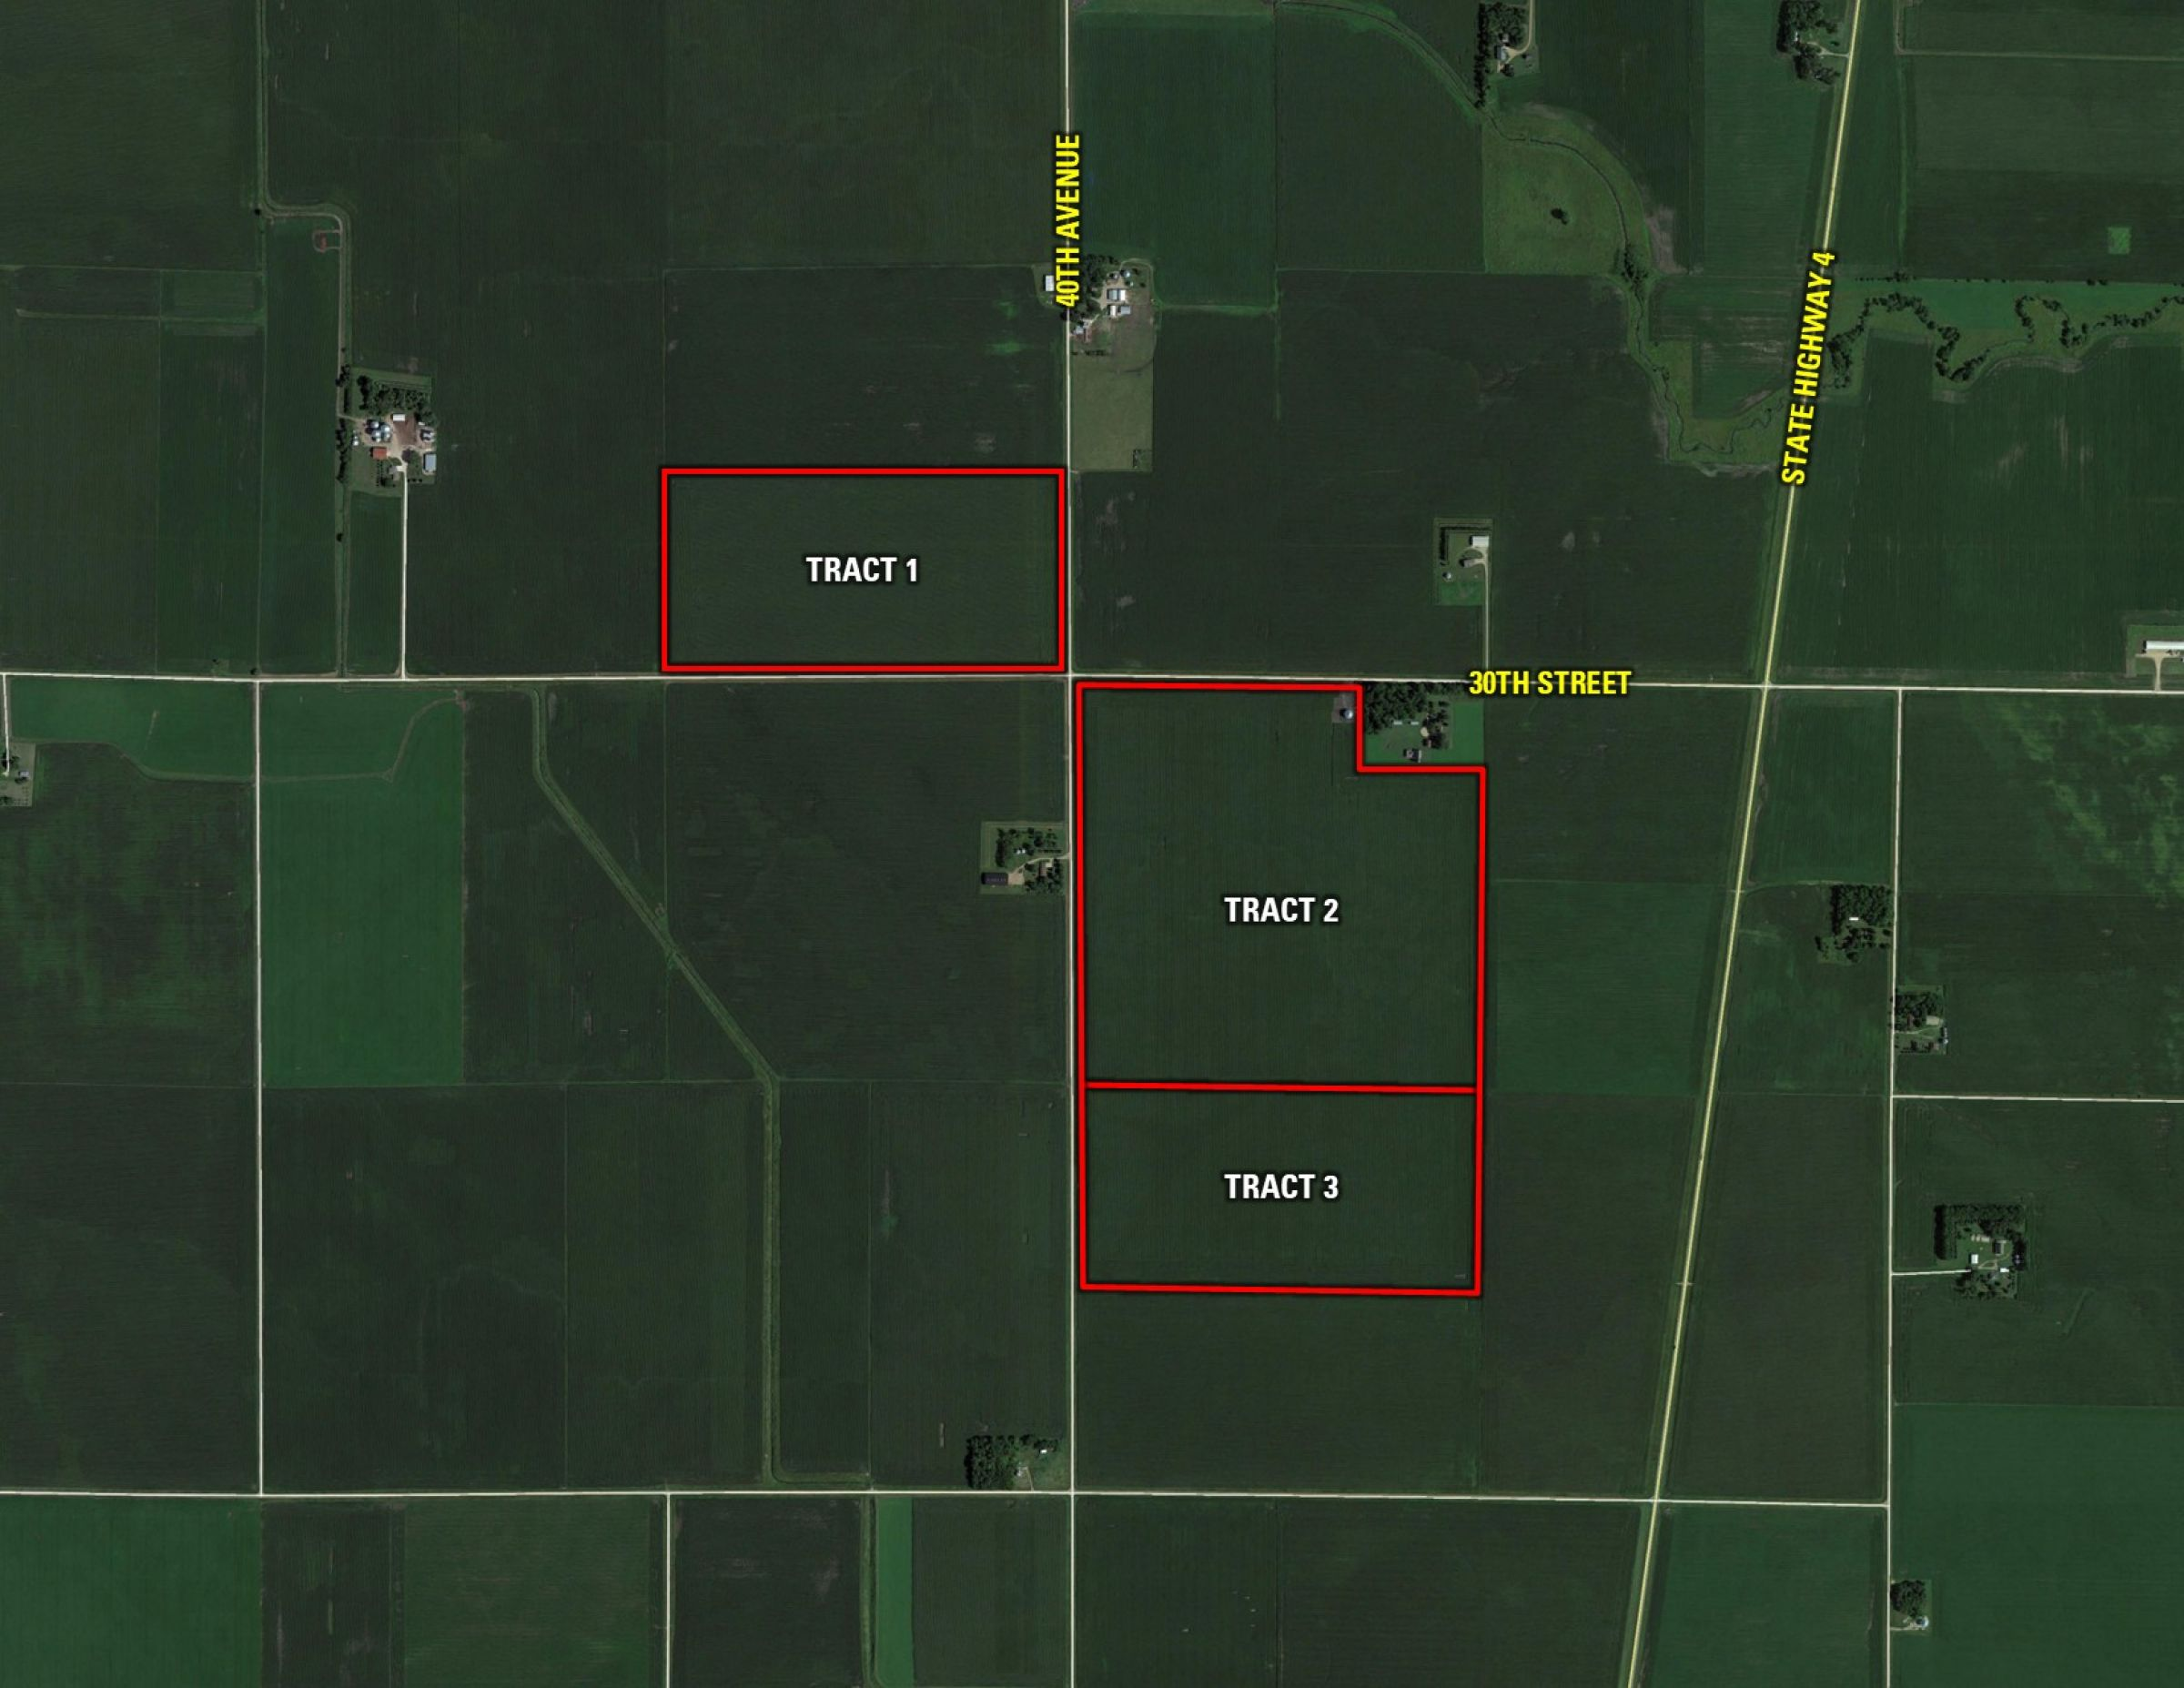 auctions-land-martin-county-minnesota-310-acres-listing-number-15783-0-2021-10-01-182313.jpg